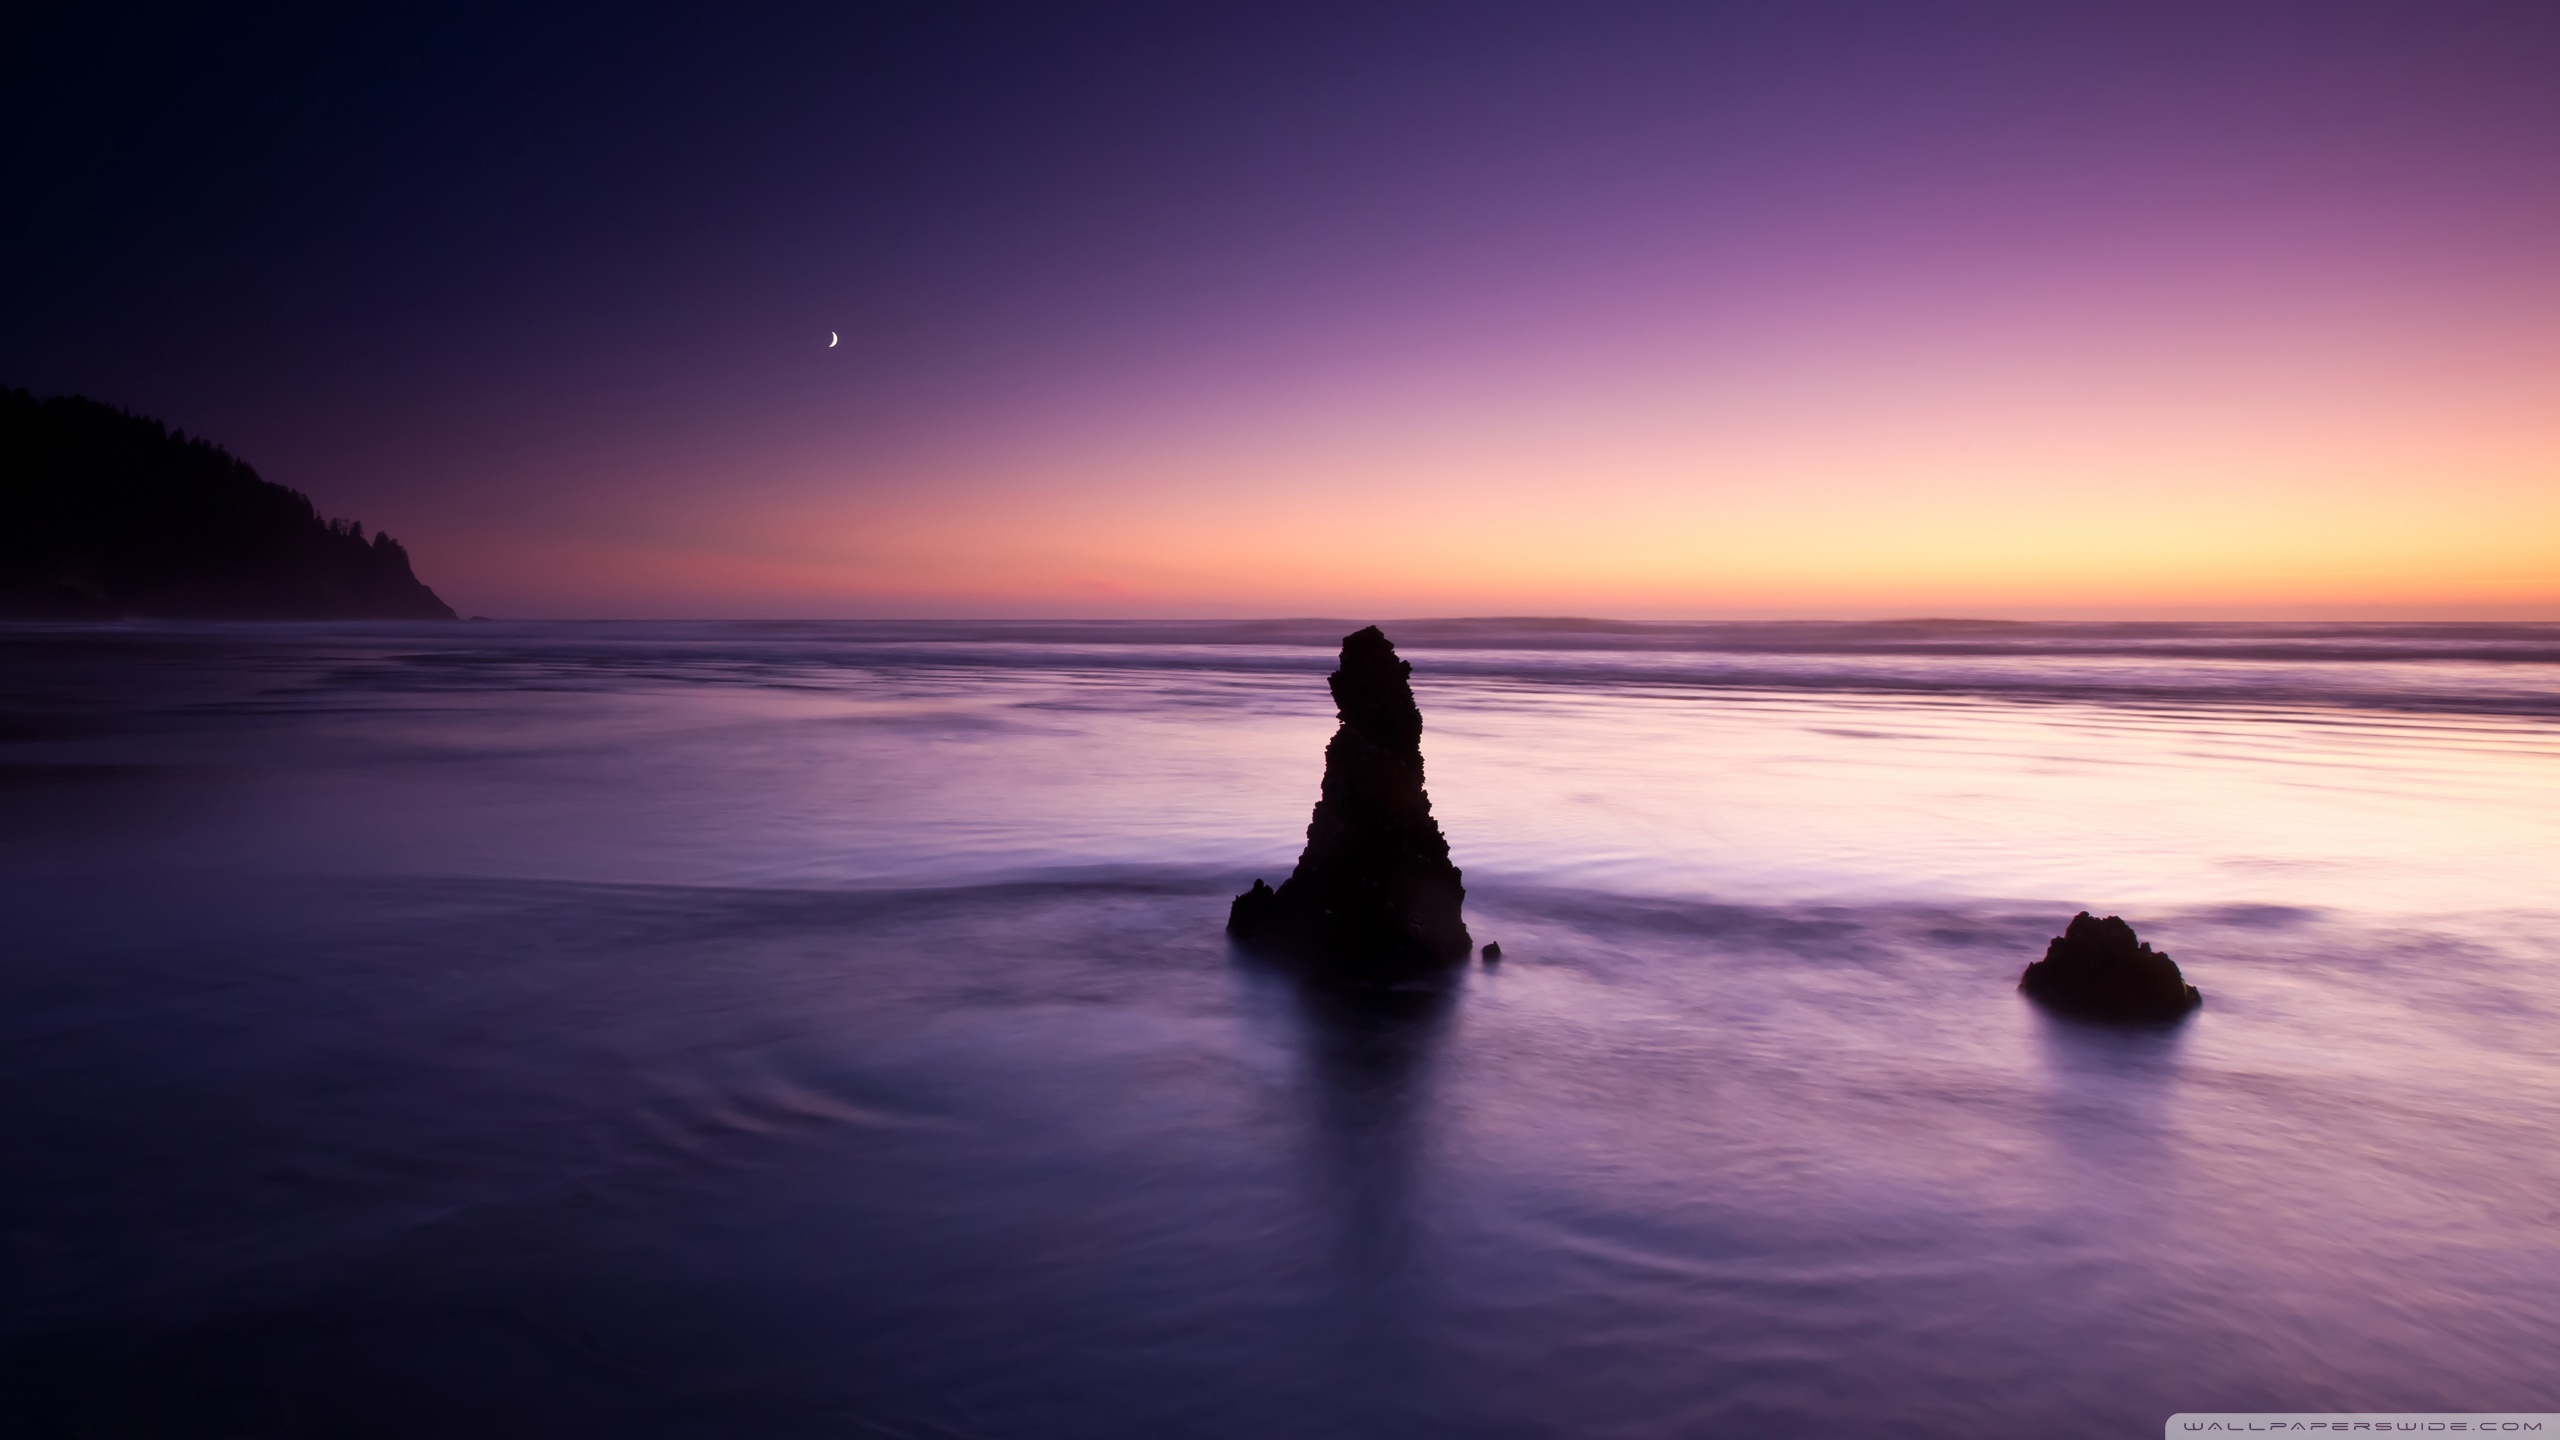 purple_evening_on_the_beach-wallpaper-2560x1440